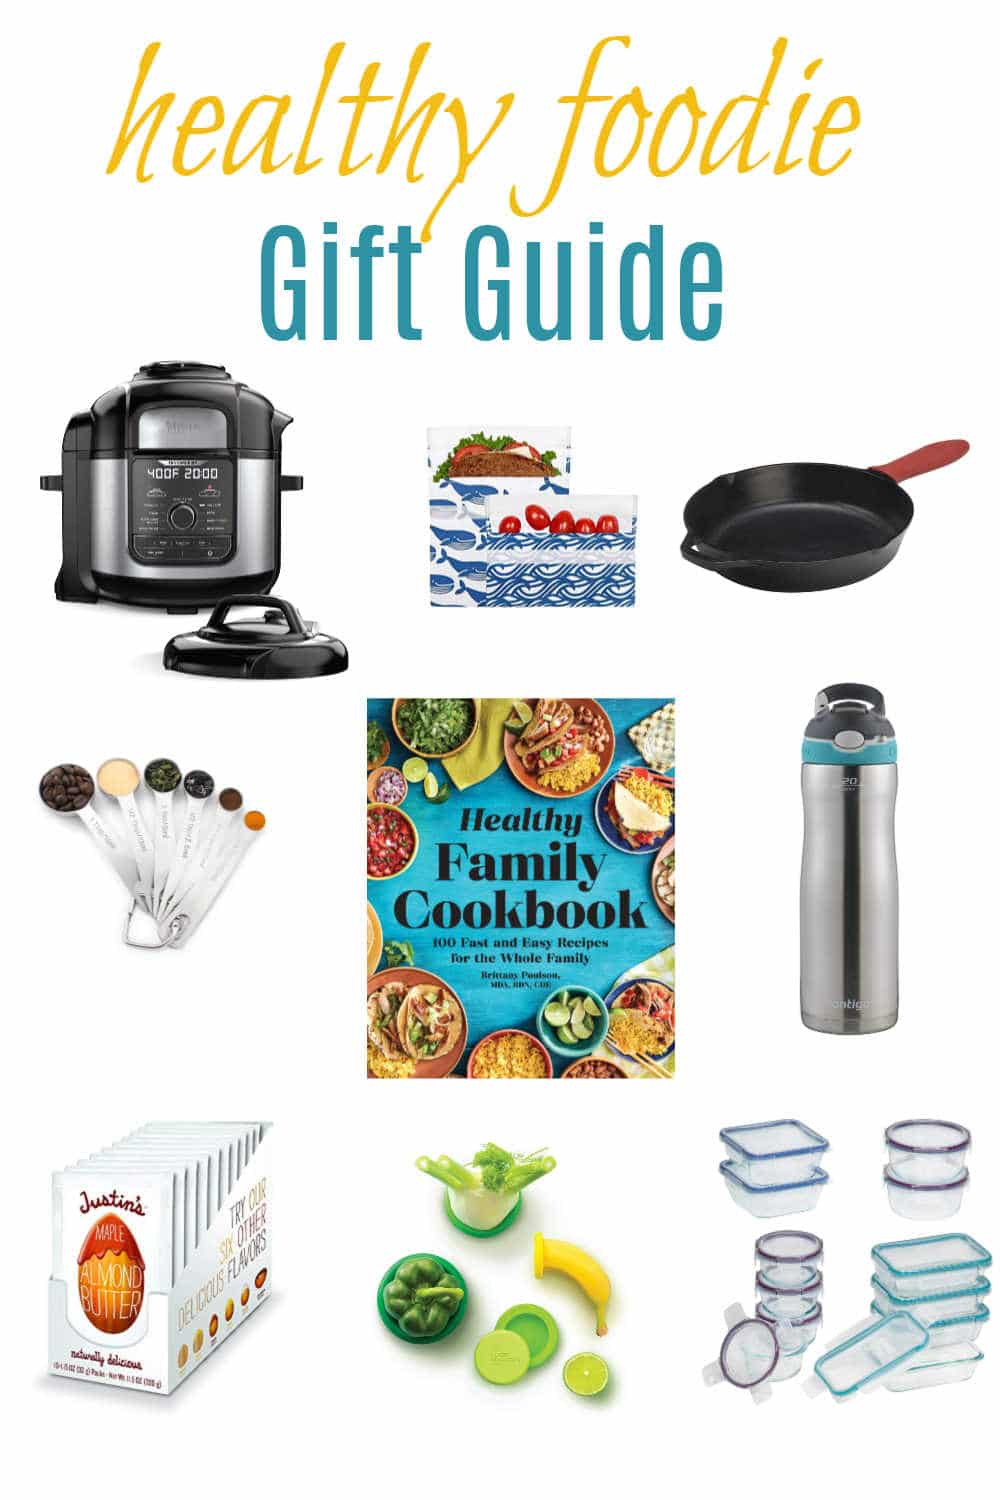 From kitchen gadgets to cookbooks, this healthy foodie gift guide is sure to have something for the healthy foodie in your life. | via www.yourchoicenutrition.com